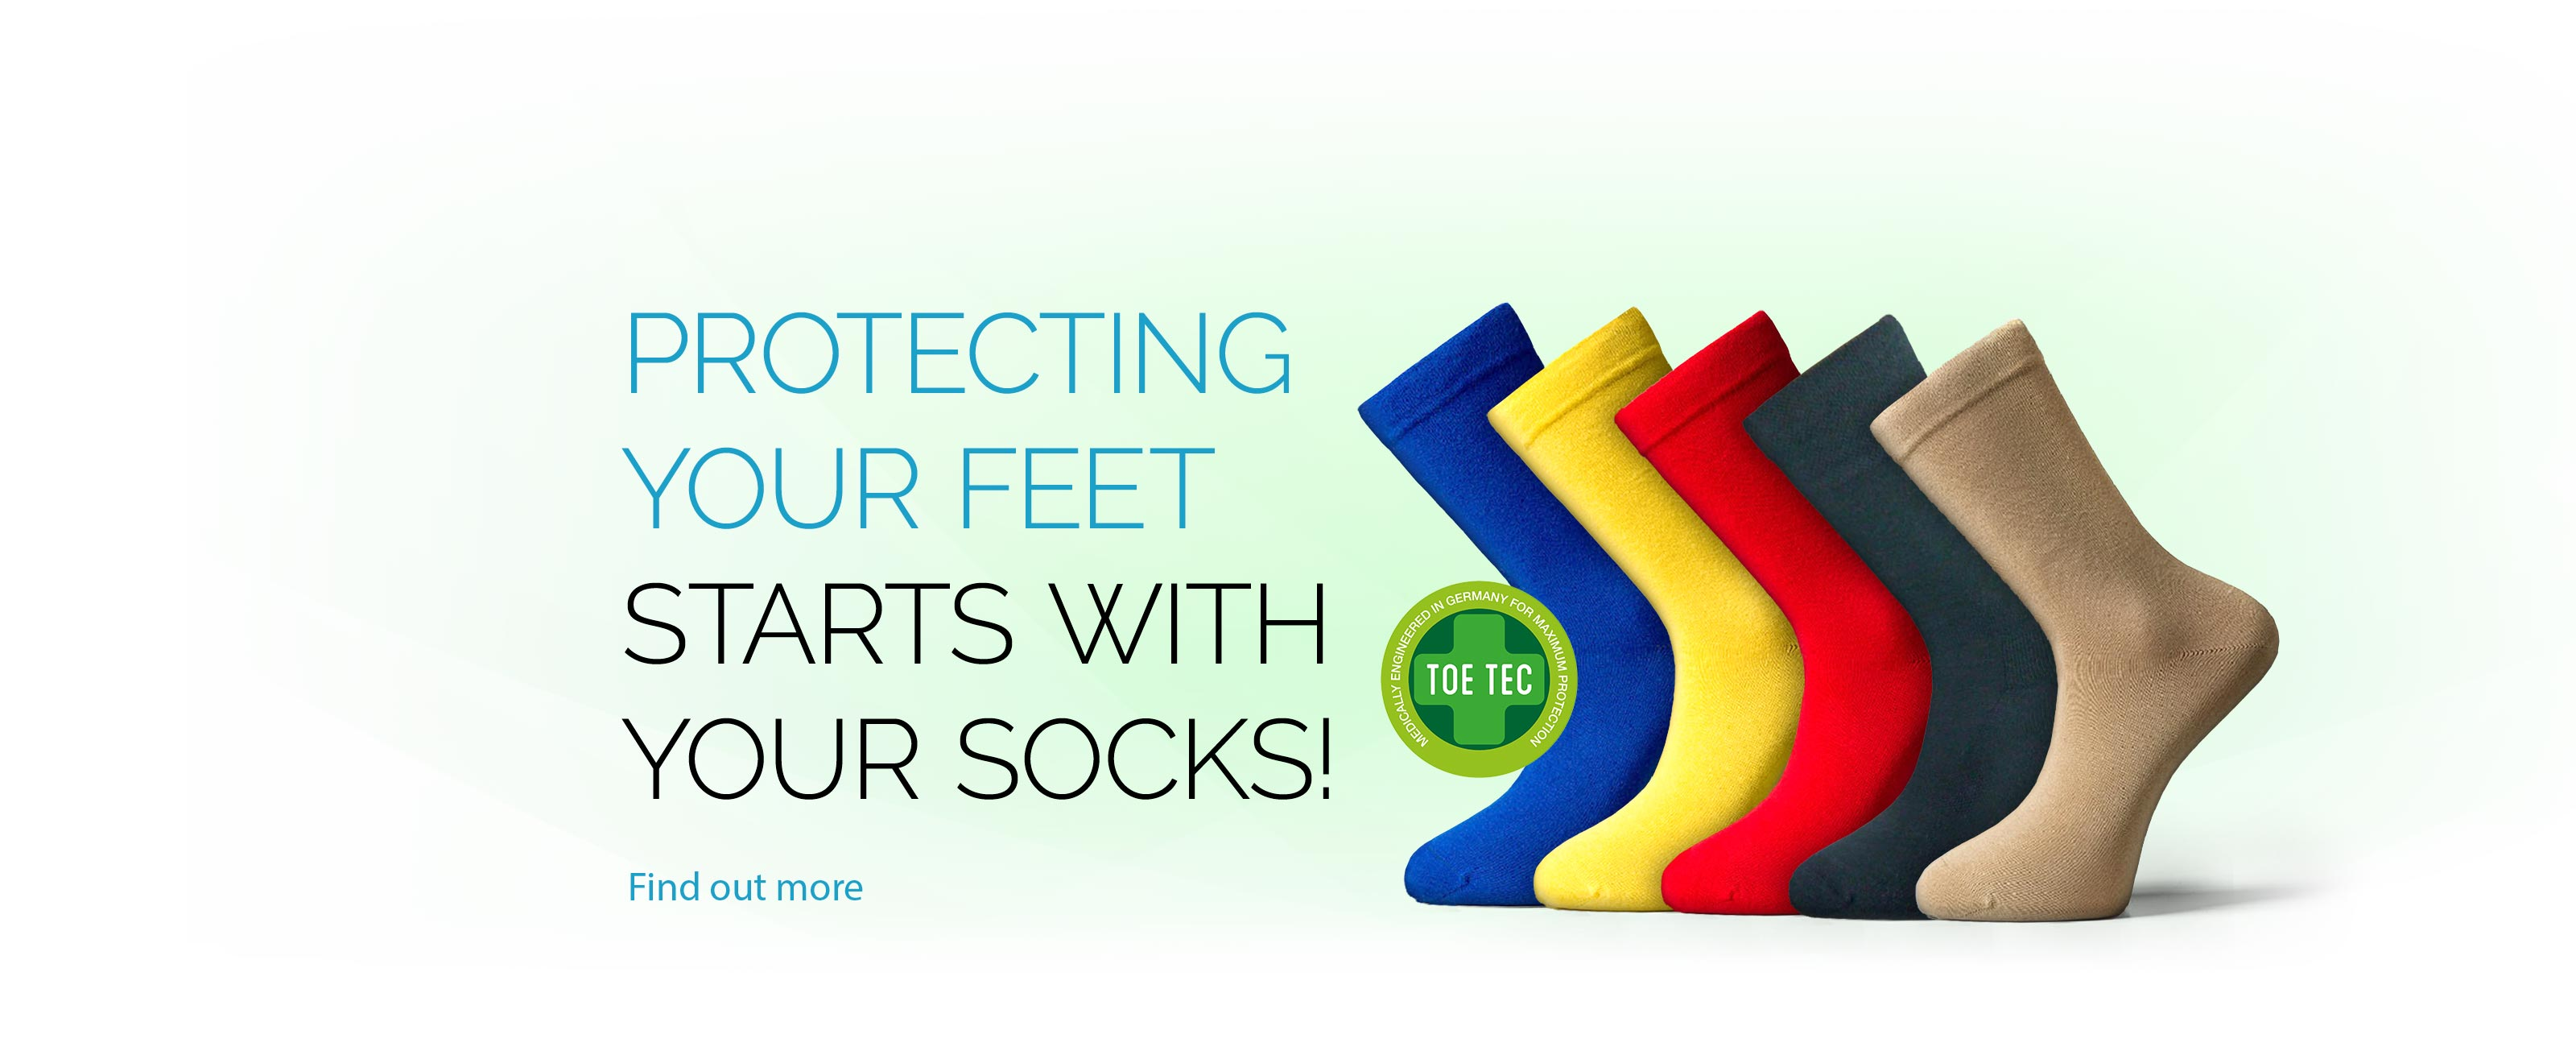 Protecting your feet starts with your socks!